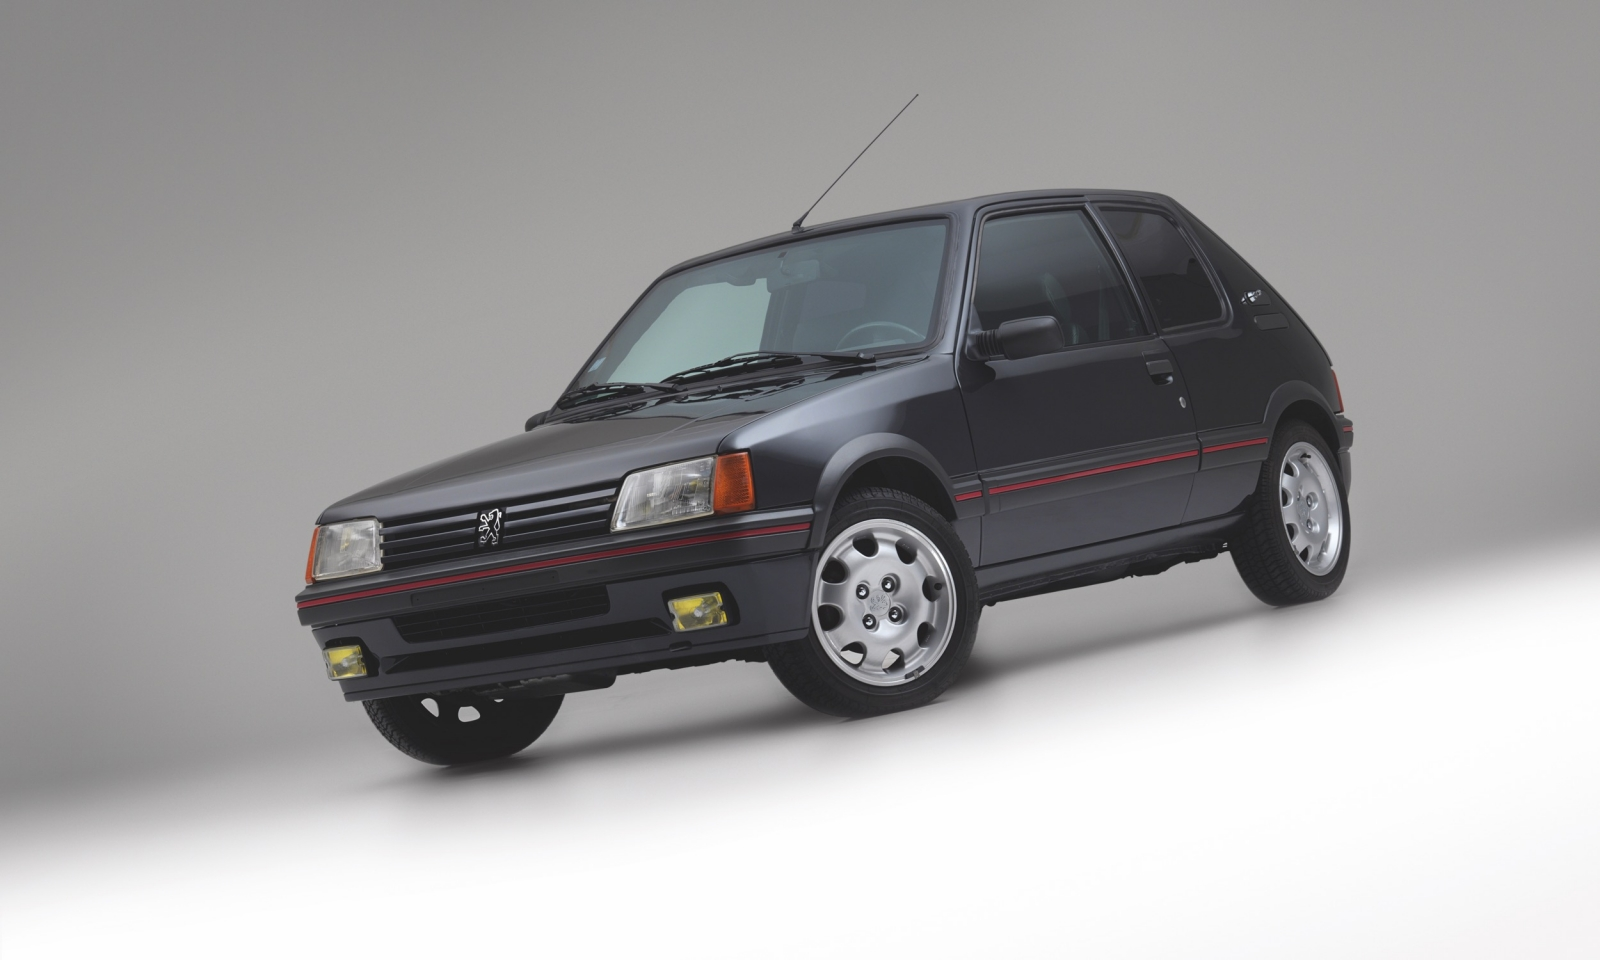 Armored_1990_Peugeot_205_GTI_0000